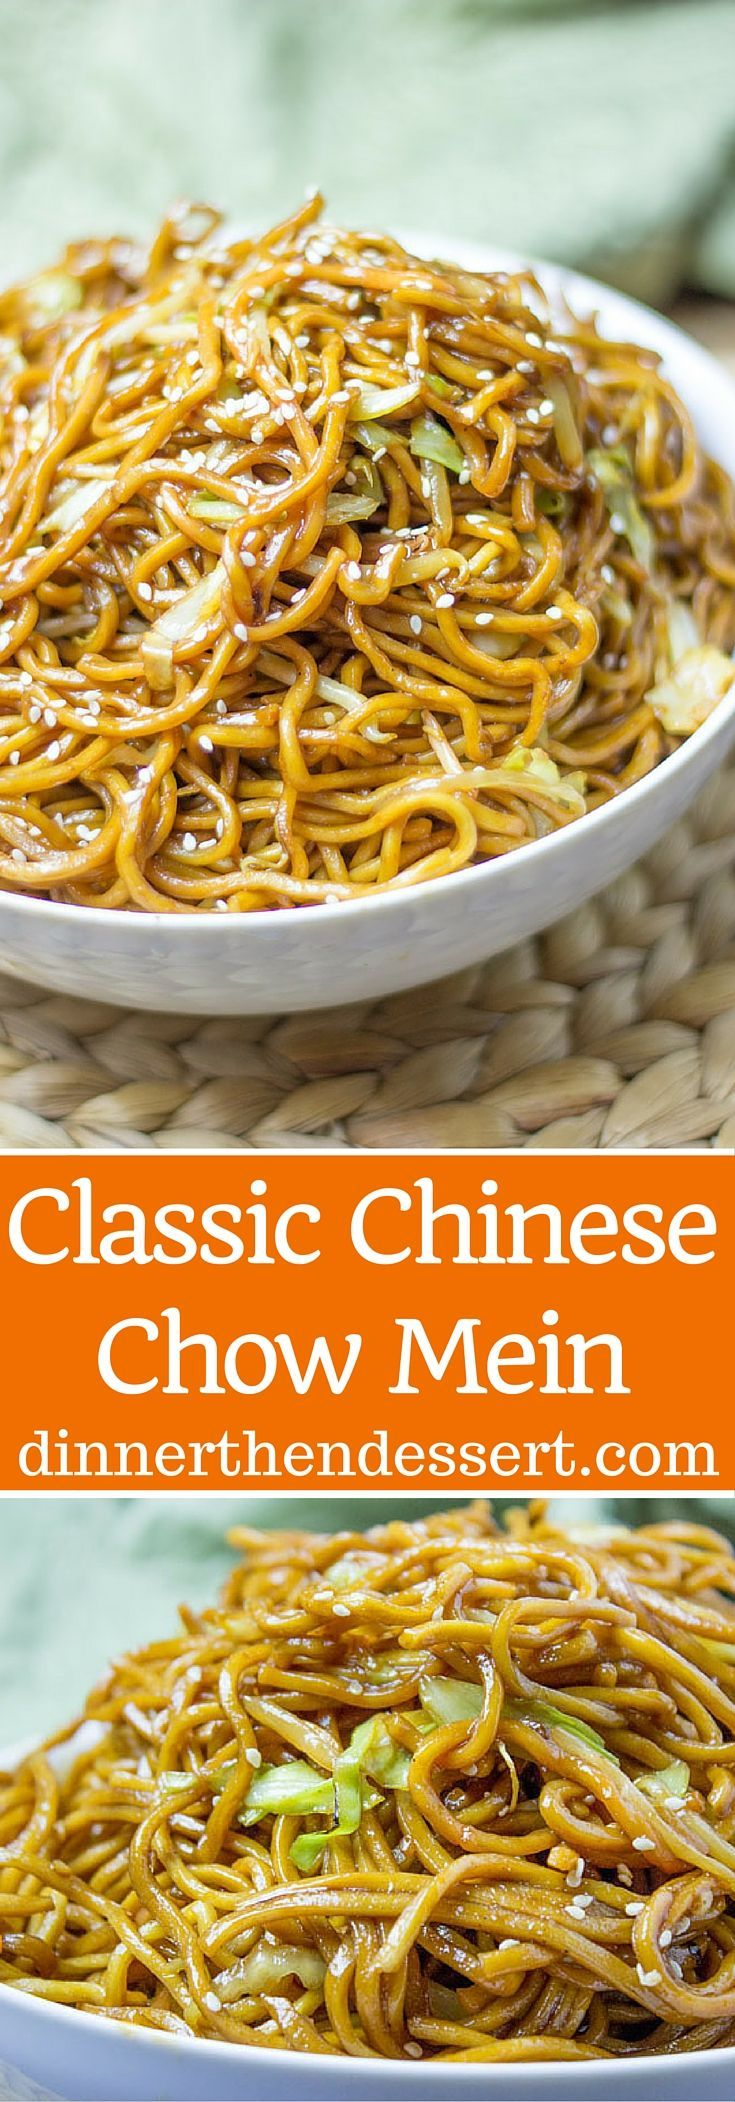 Classic chinese chow mein with authentic ingredients and easy classic chinese chow mein with authentic ingredients and easy ingredient swaps to make this a pantry chinese food recipes chickeneasy forumfinder Choice Image